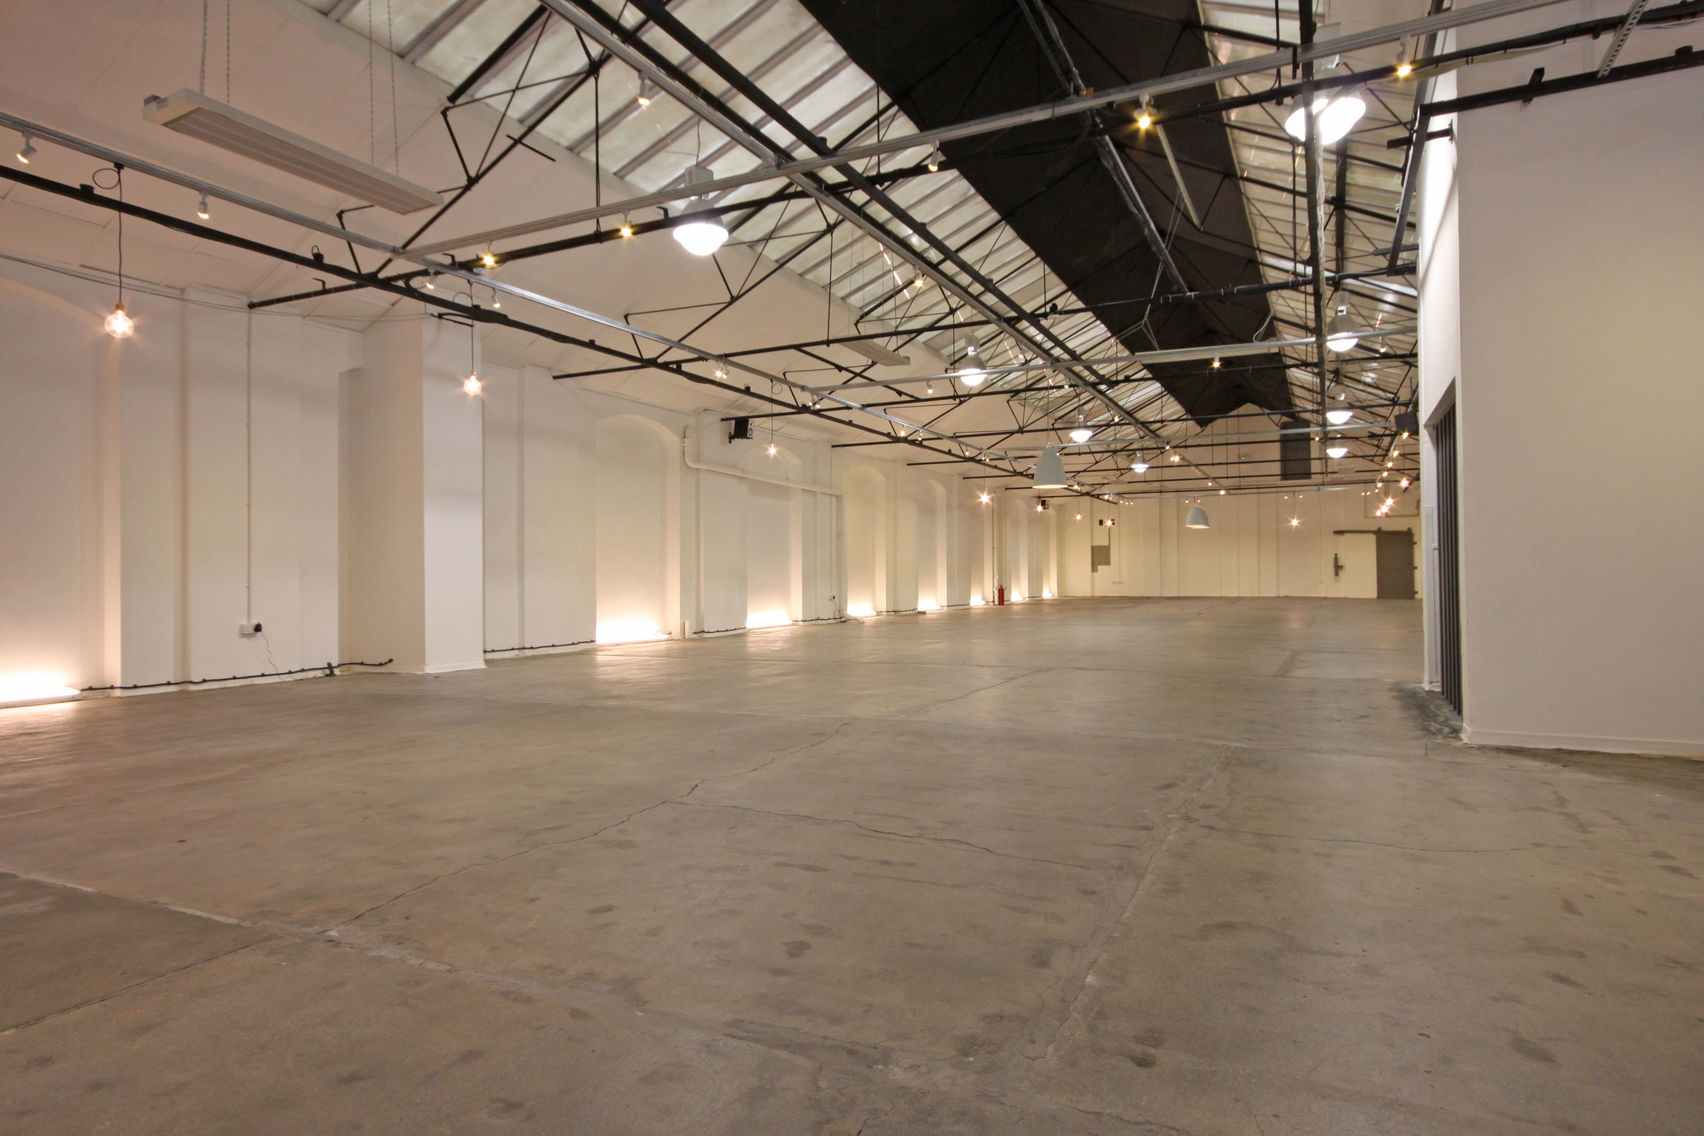 A large empty warehouse Space with vaulted ceilings